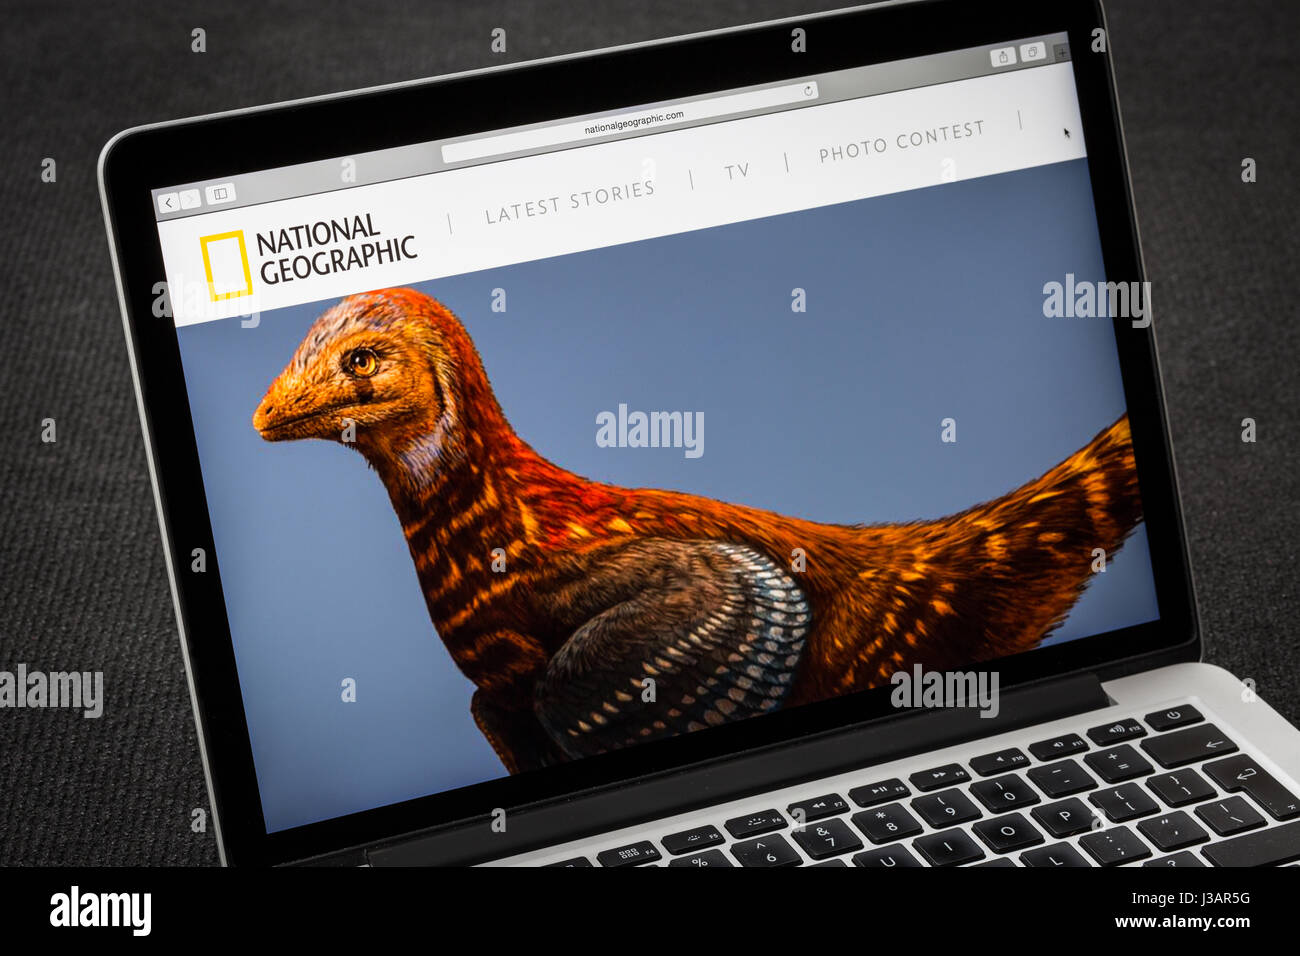 National Geographic website - Stock Image